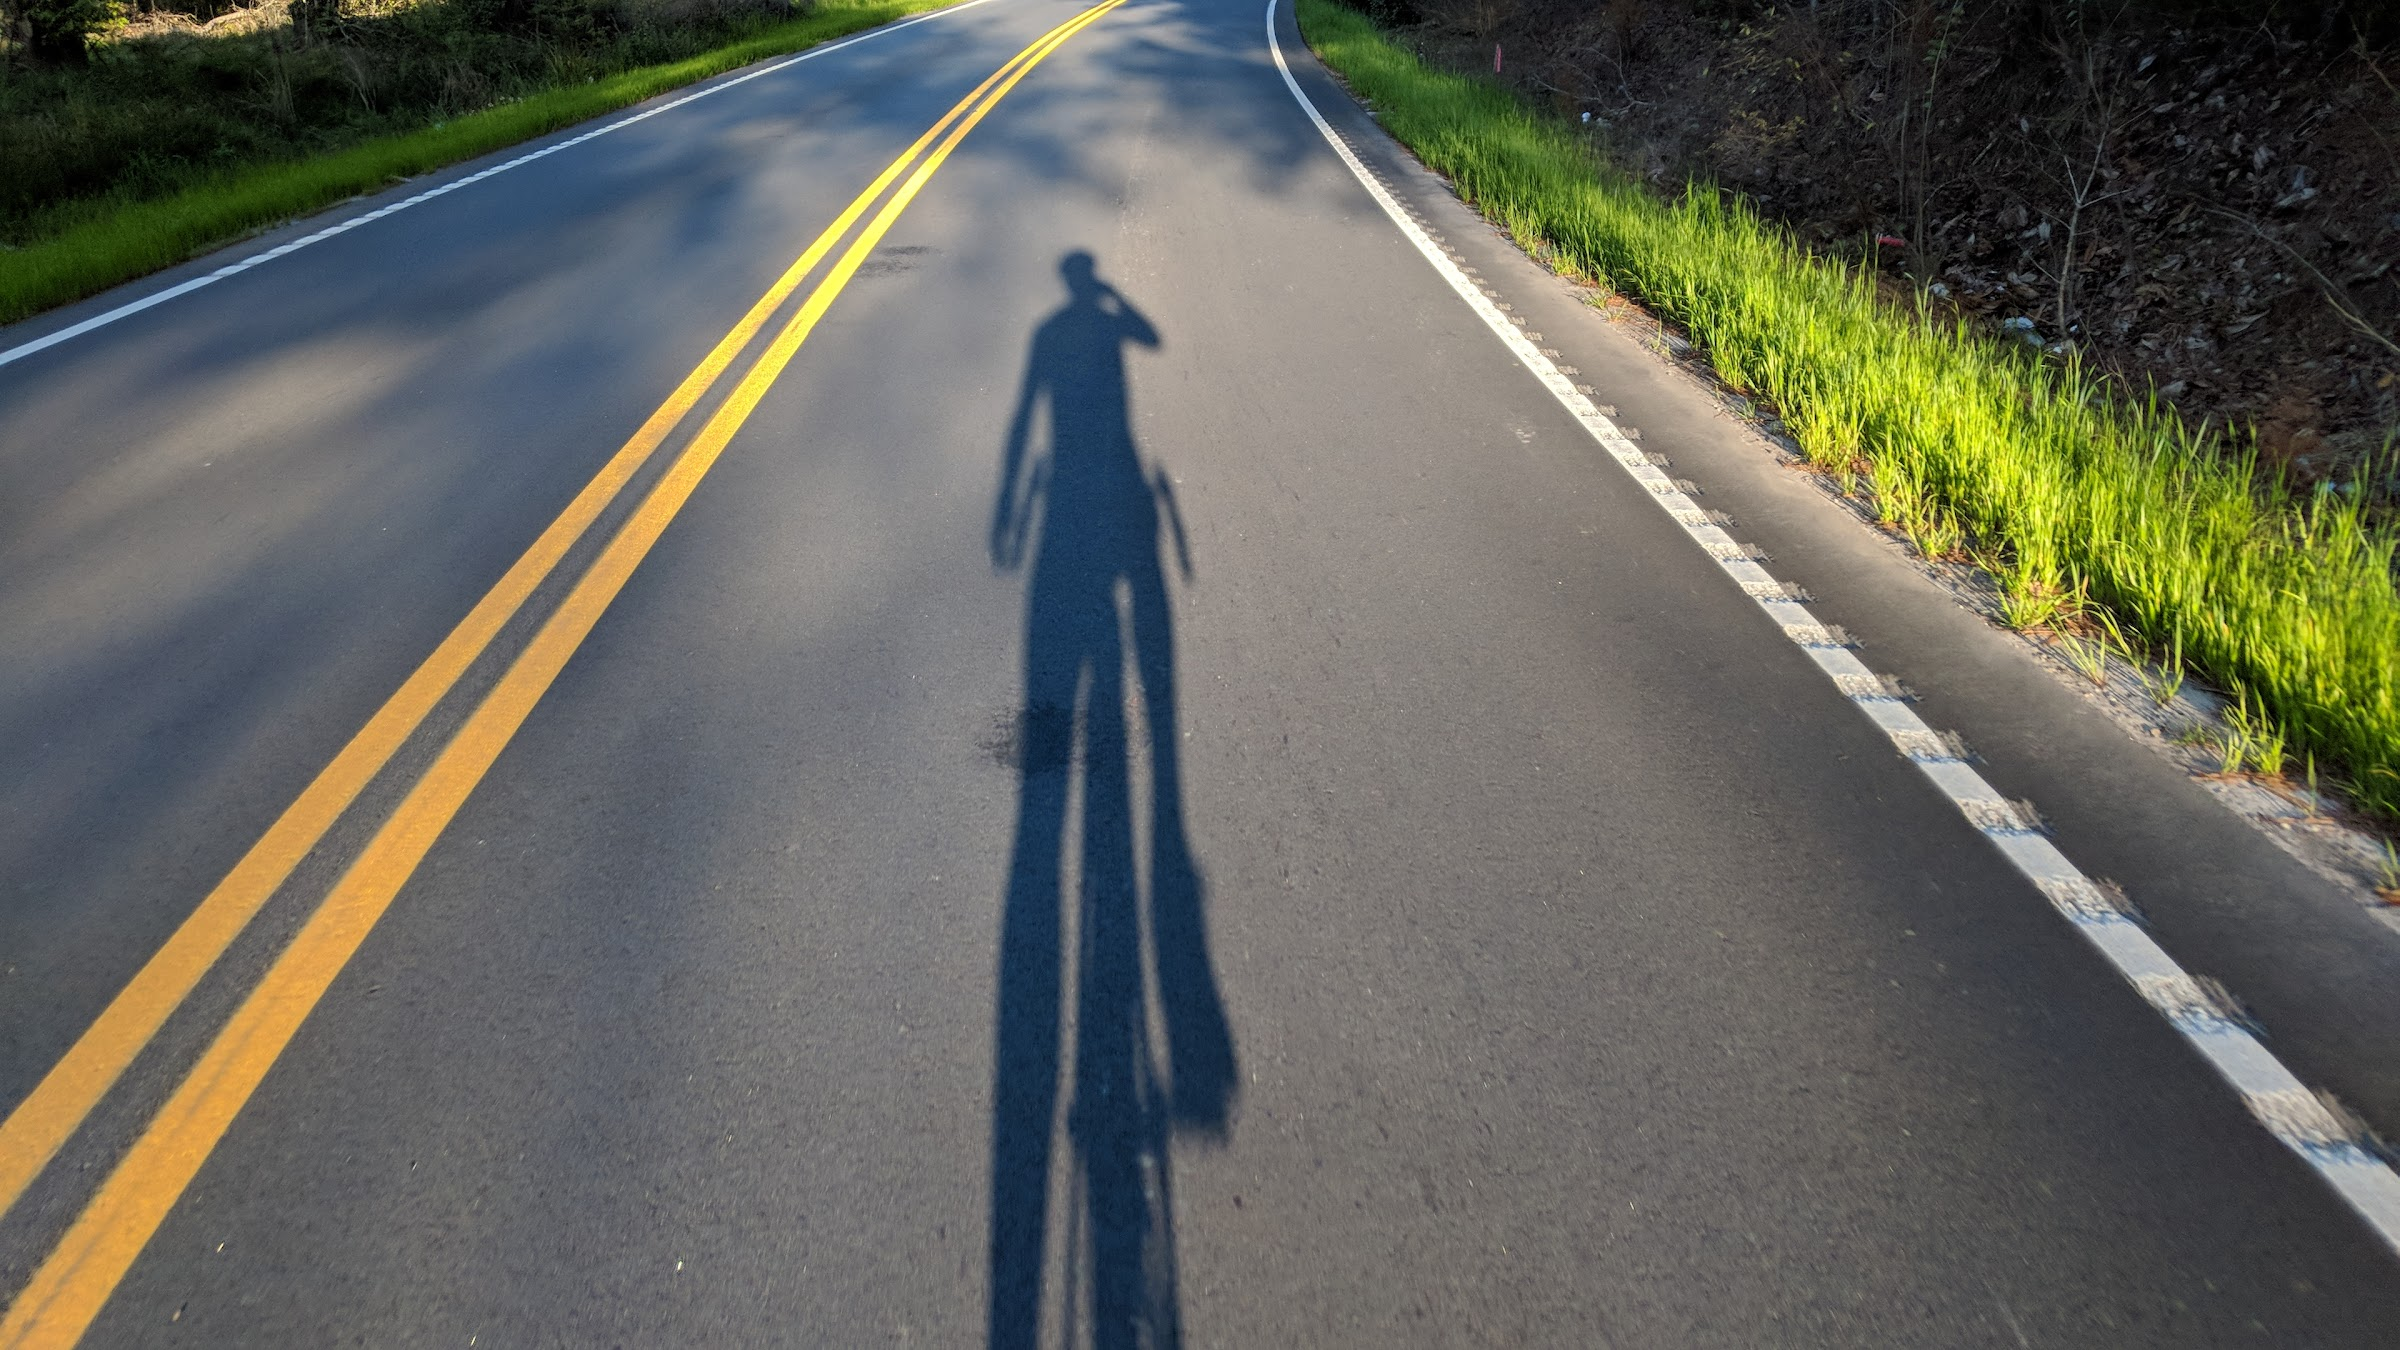 Bicycle shadow on road